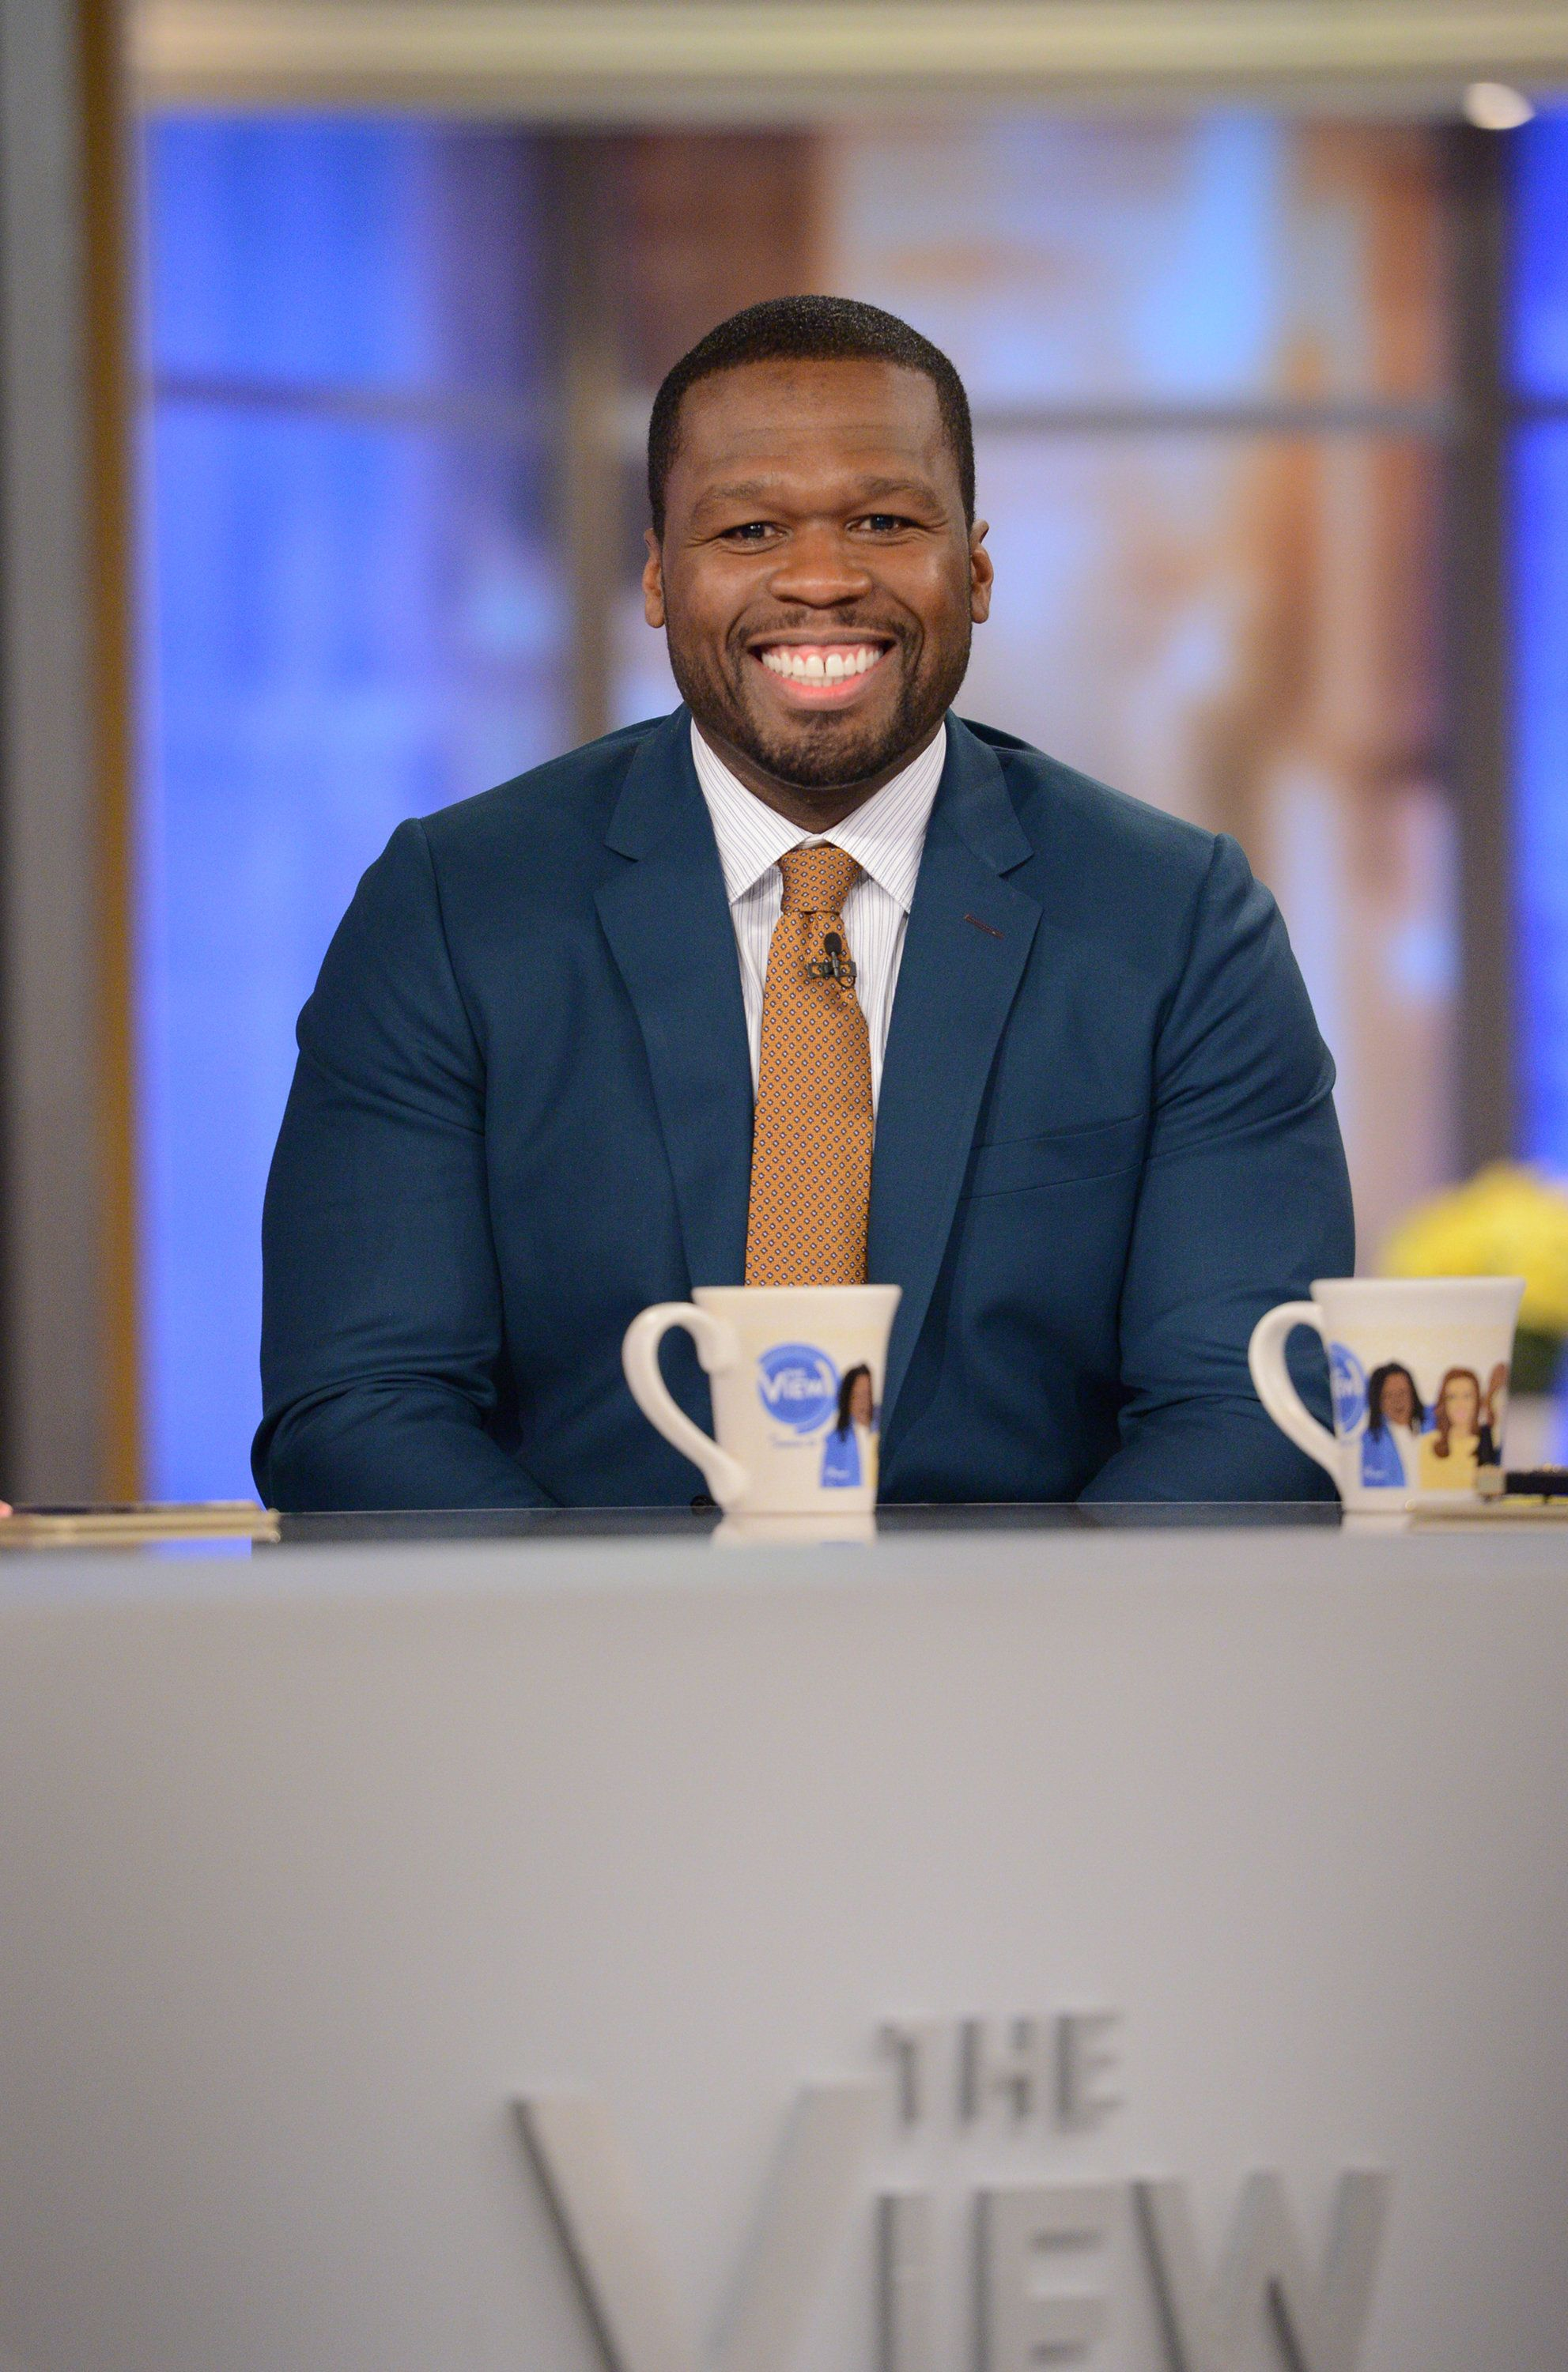 THE VIEW -  Rapper and actor 50 Cent is the guest today, Monday, 9/25/17 on ABC's 'The View.'   'The View' airs Monday-Friday (11:00 am-12:00 pm, ET) on the ABC Television Network.     (Photo by Lorenzo Bevilaqua/ABC via Getty Images)  50 CENT